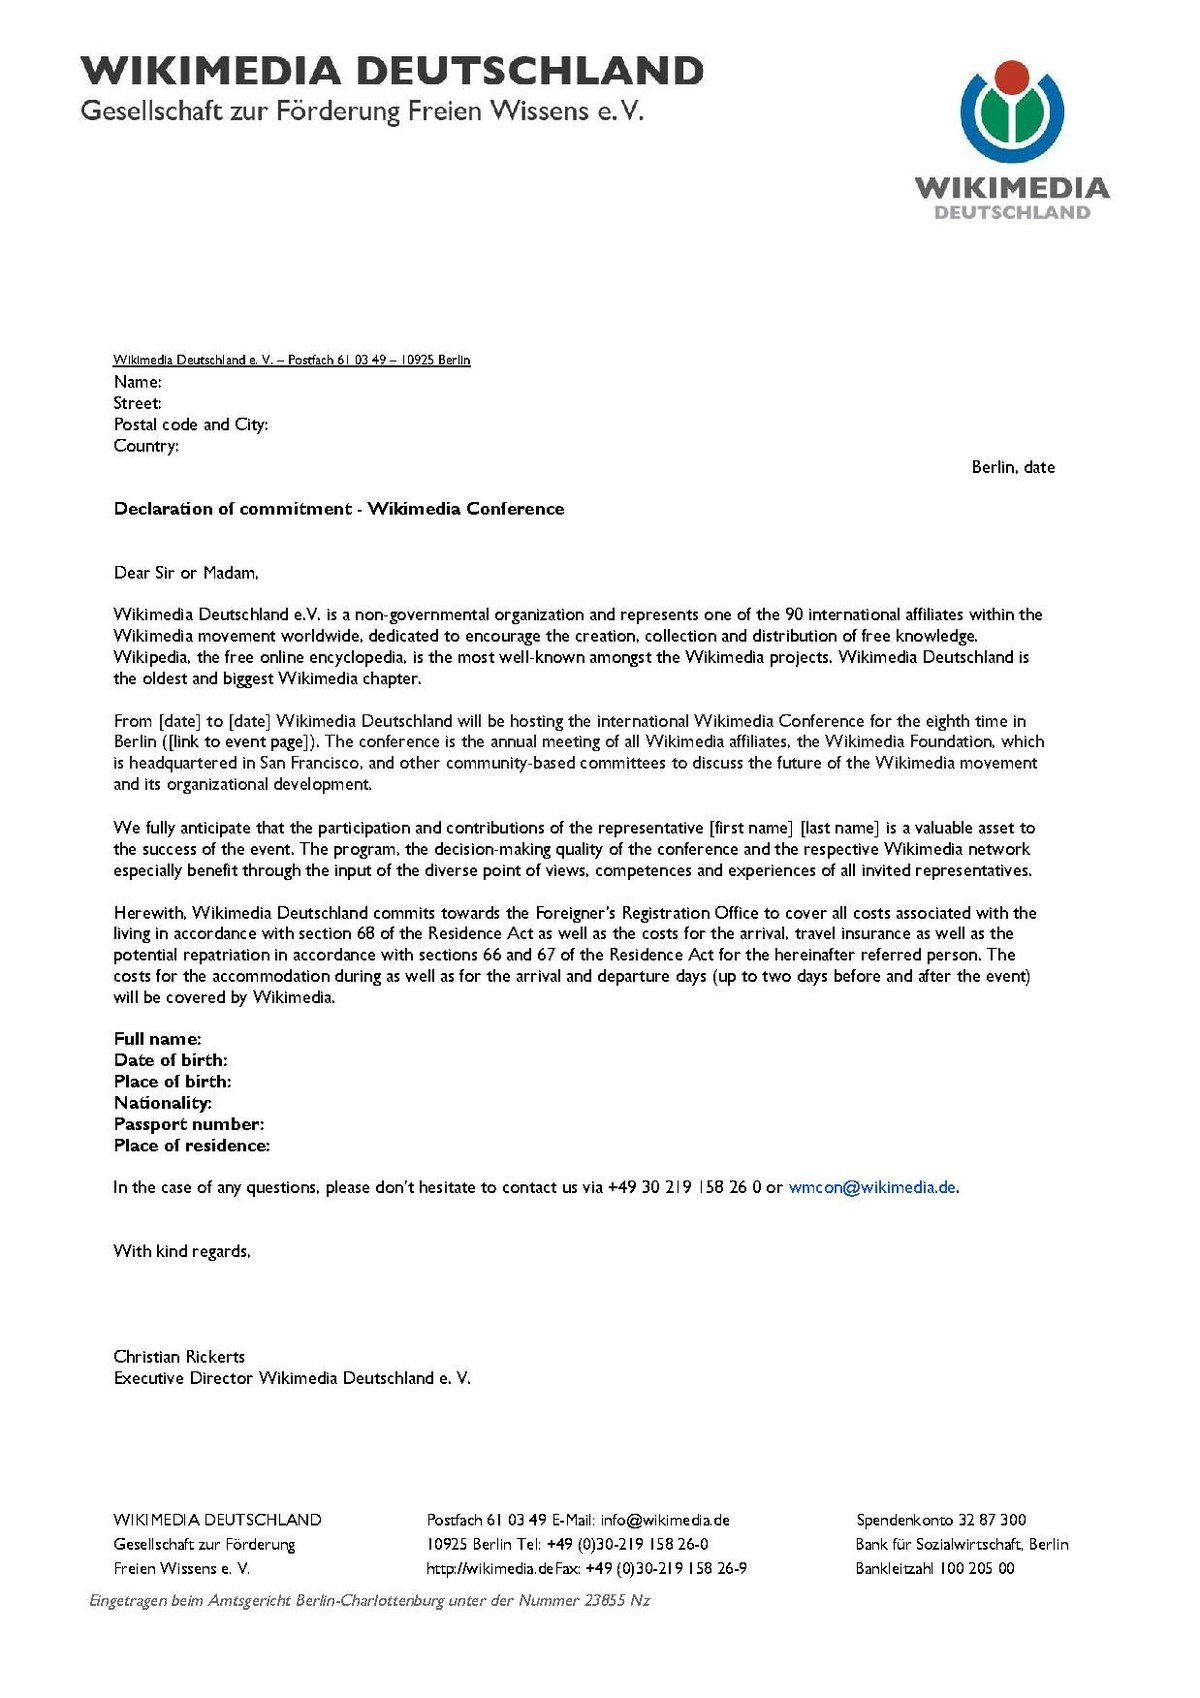 wikimania  letter of invitation